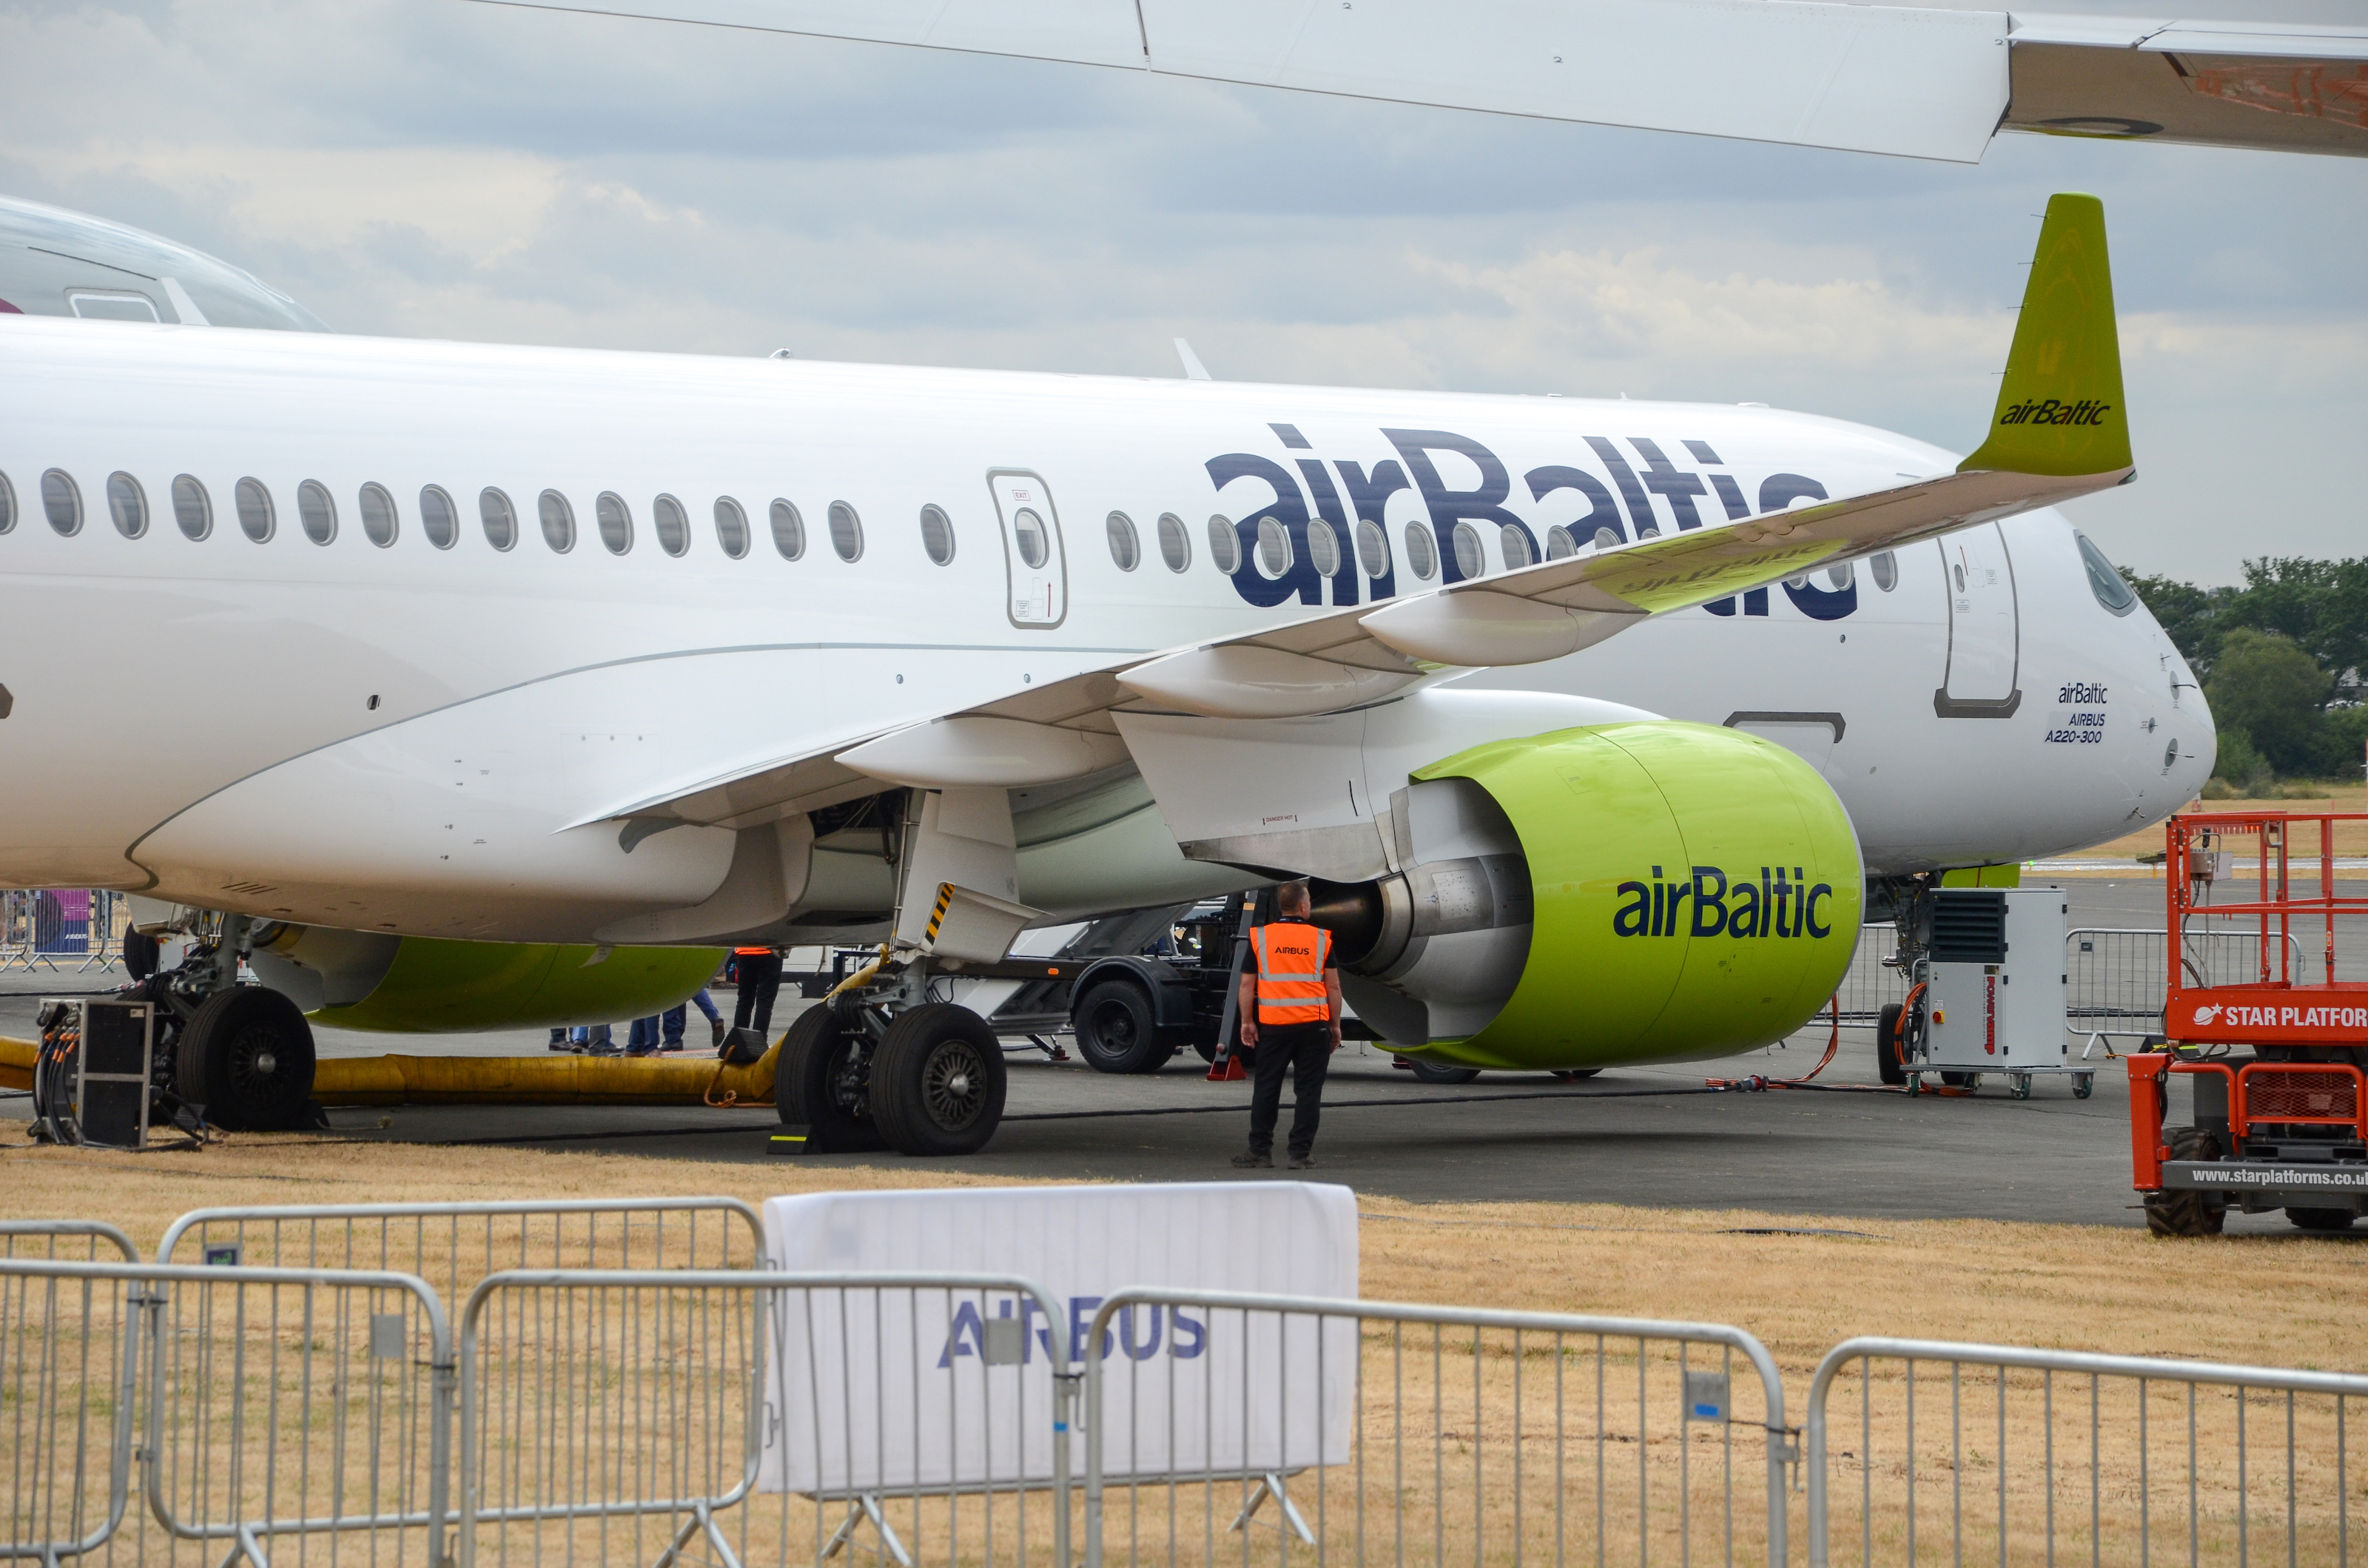 An AirBaltic Airbus A220-300 on display at the 2018 Farnborough International Airshow.